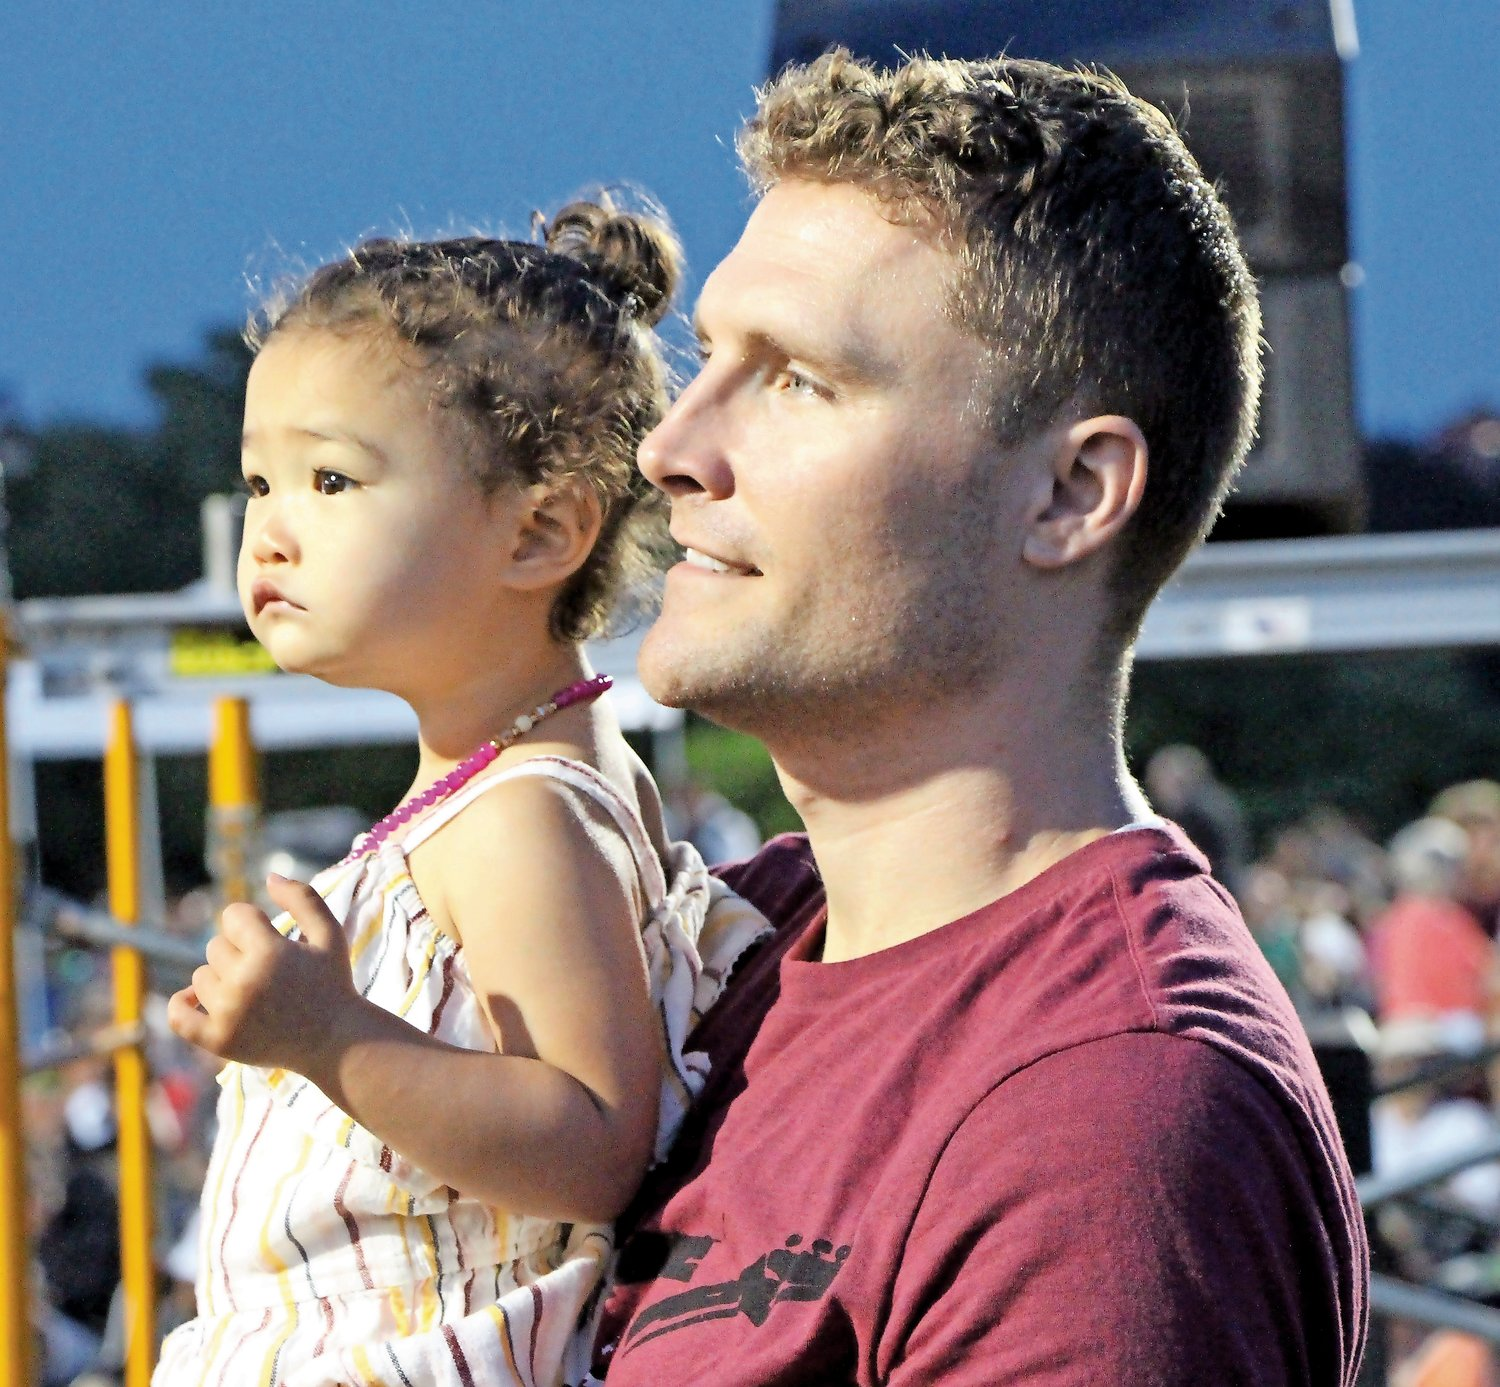 Carolyn Weakly (1 1/2yrs) with her father Chris, eagerly watching the South Shore Orchestra perform at the RVC Fireworks show.